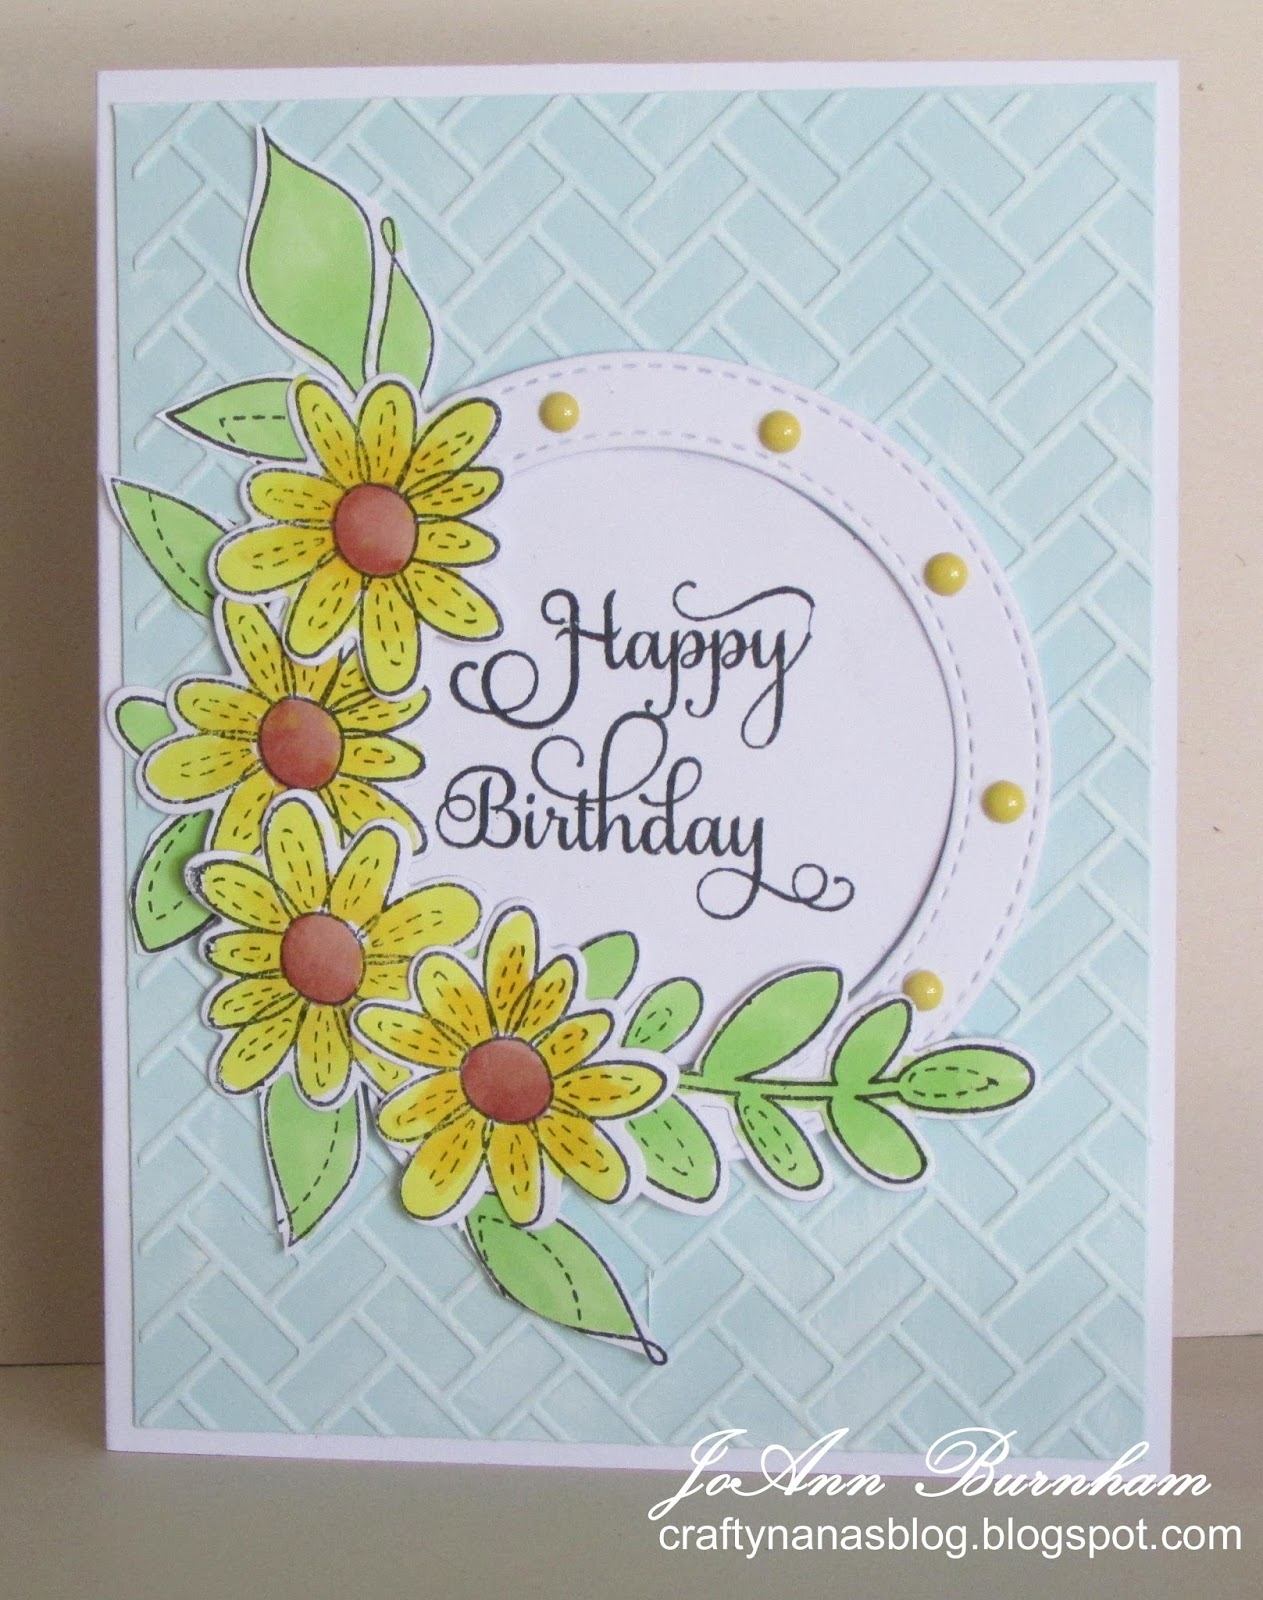 Crafty nanas blog happy birthday i used simon says stamp more spring flowers stamps and matching dies and also spring flowers for a couple of the leaves i colored them with promarkers and izmirmasajfo Image collections